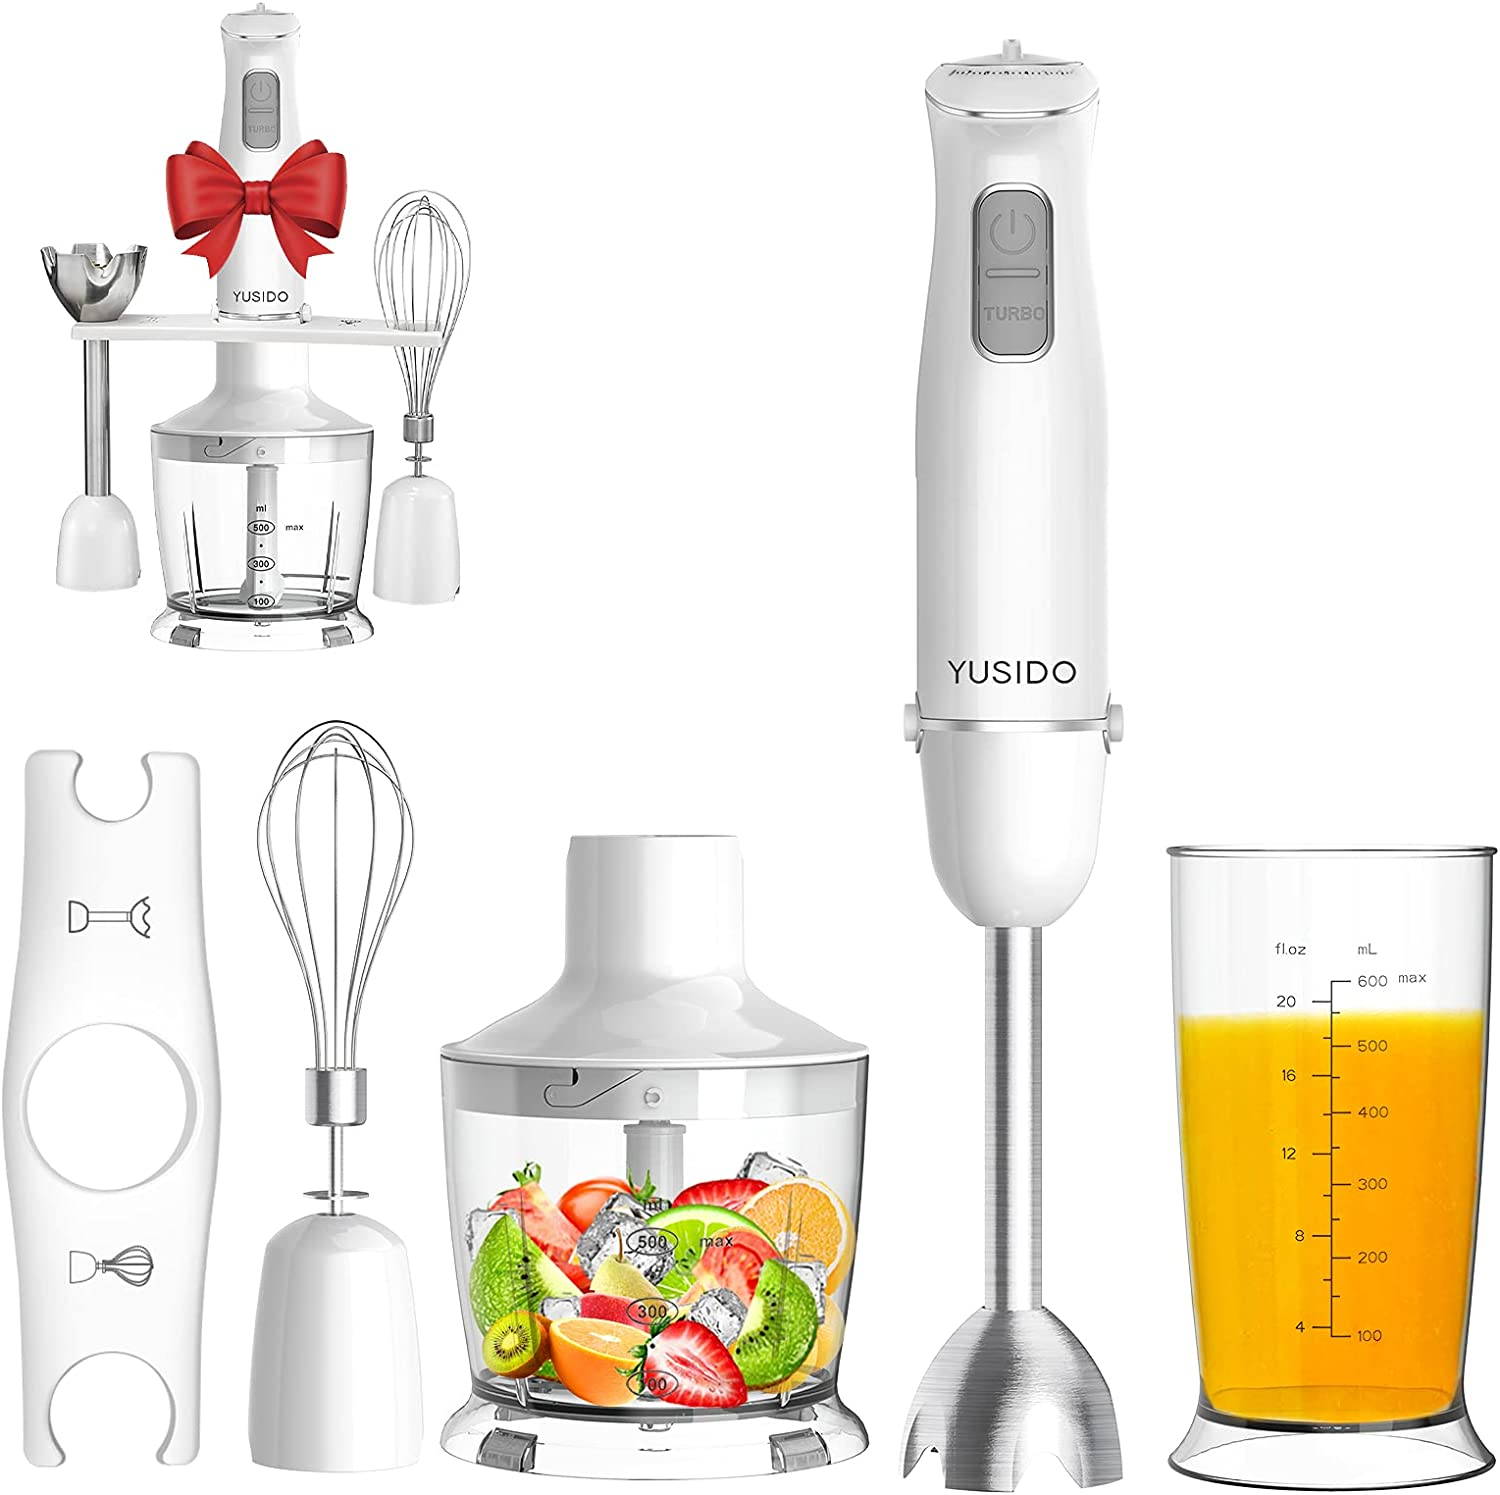 YUSIDO Upgraded 800Watt Immersion Blender, 4-In-1 Multi-Function Hand Blender, 8-Speed Stick Blender with Titanium Blades for Smoothie/Whisk/Milk Frother/Crush Ice/Soup/Juicer/Puree